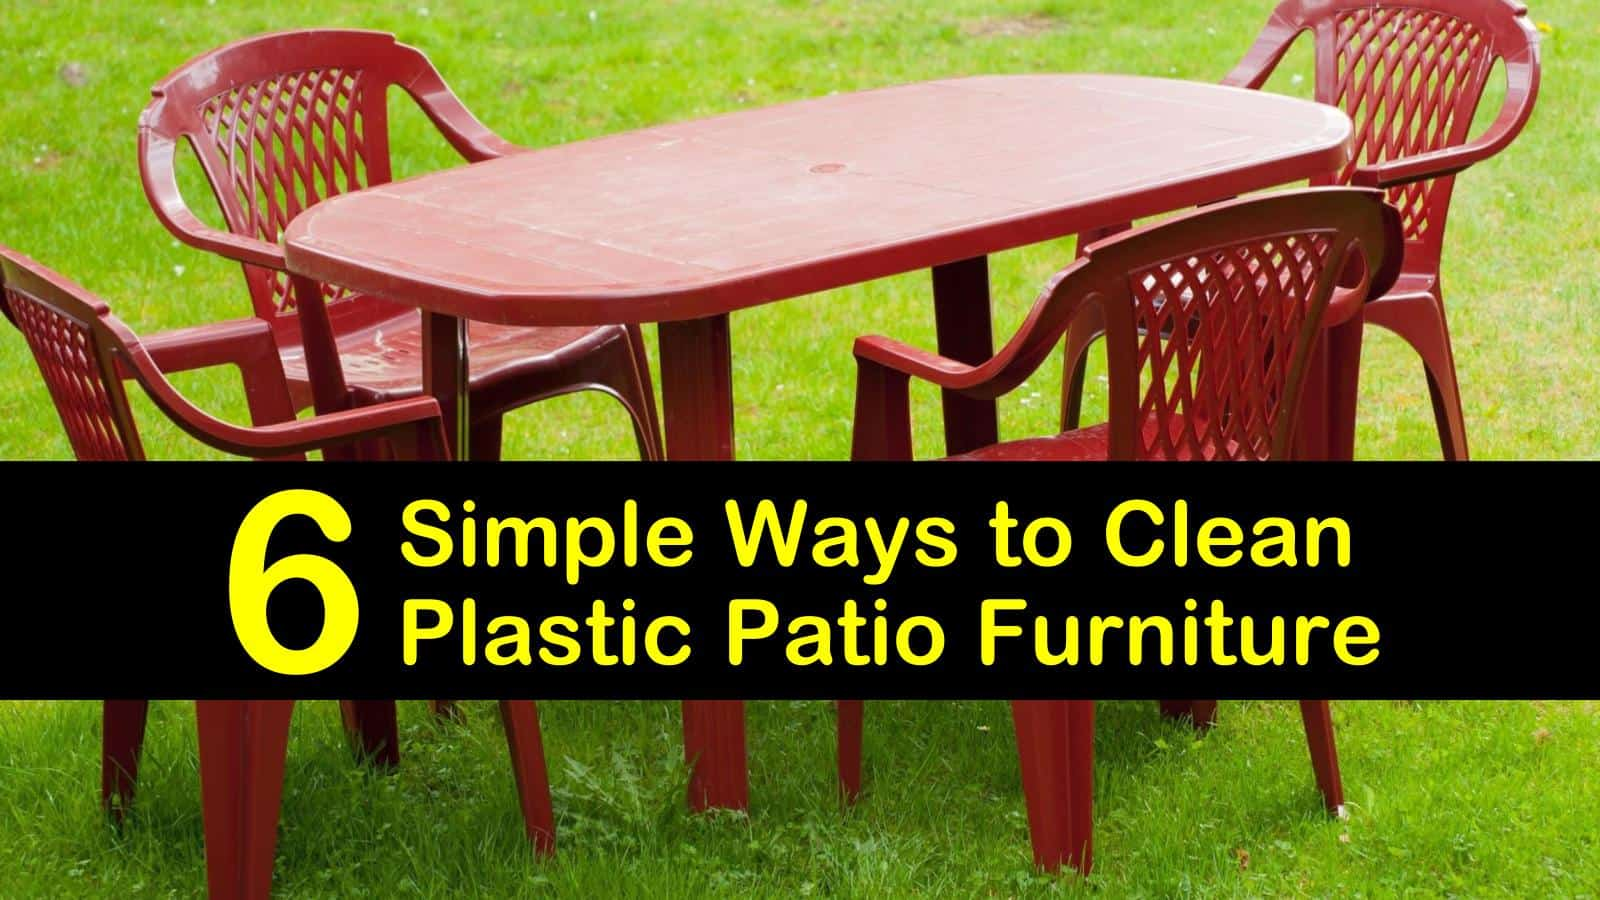 how to clean plastic patio furniture titleimg1